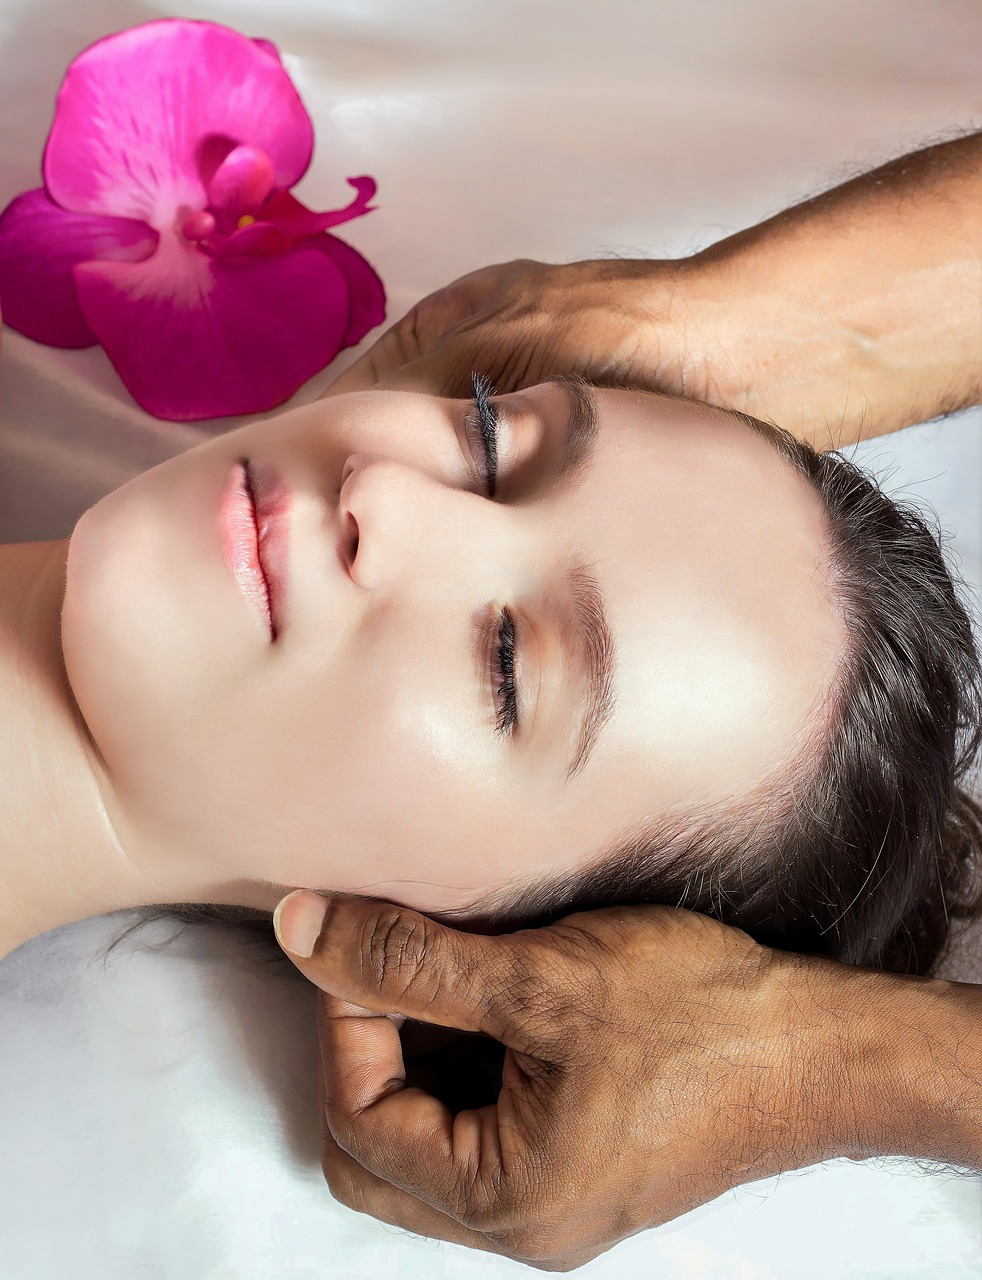 anti ageing tips for women-massage ears